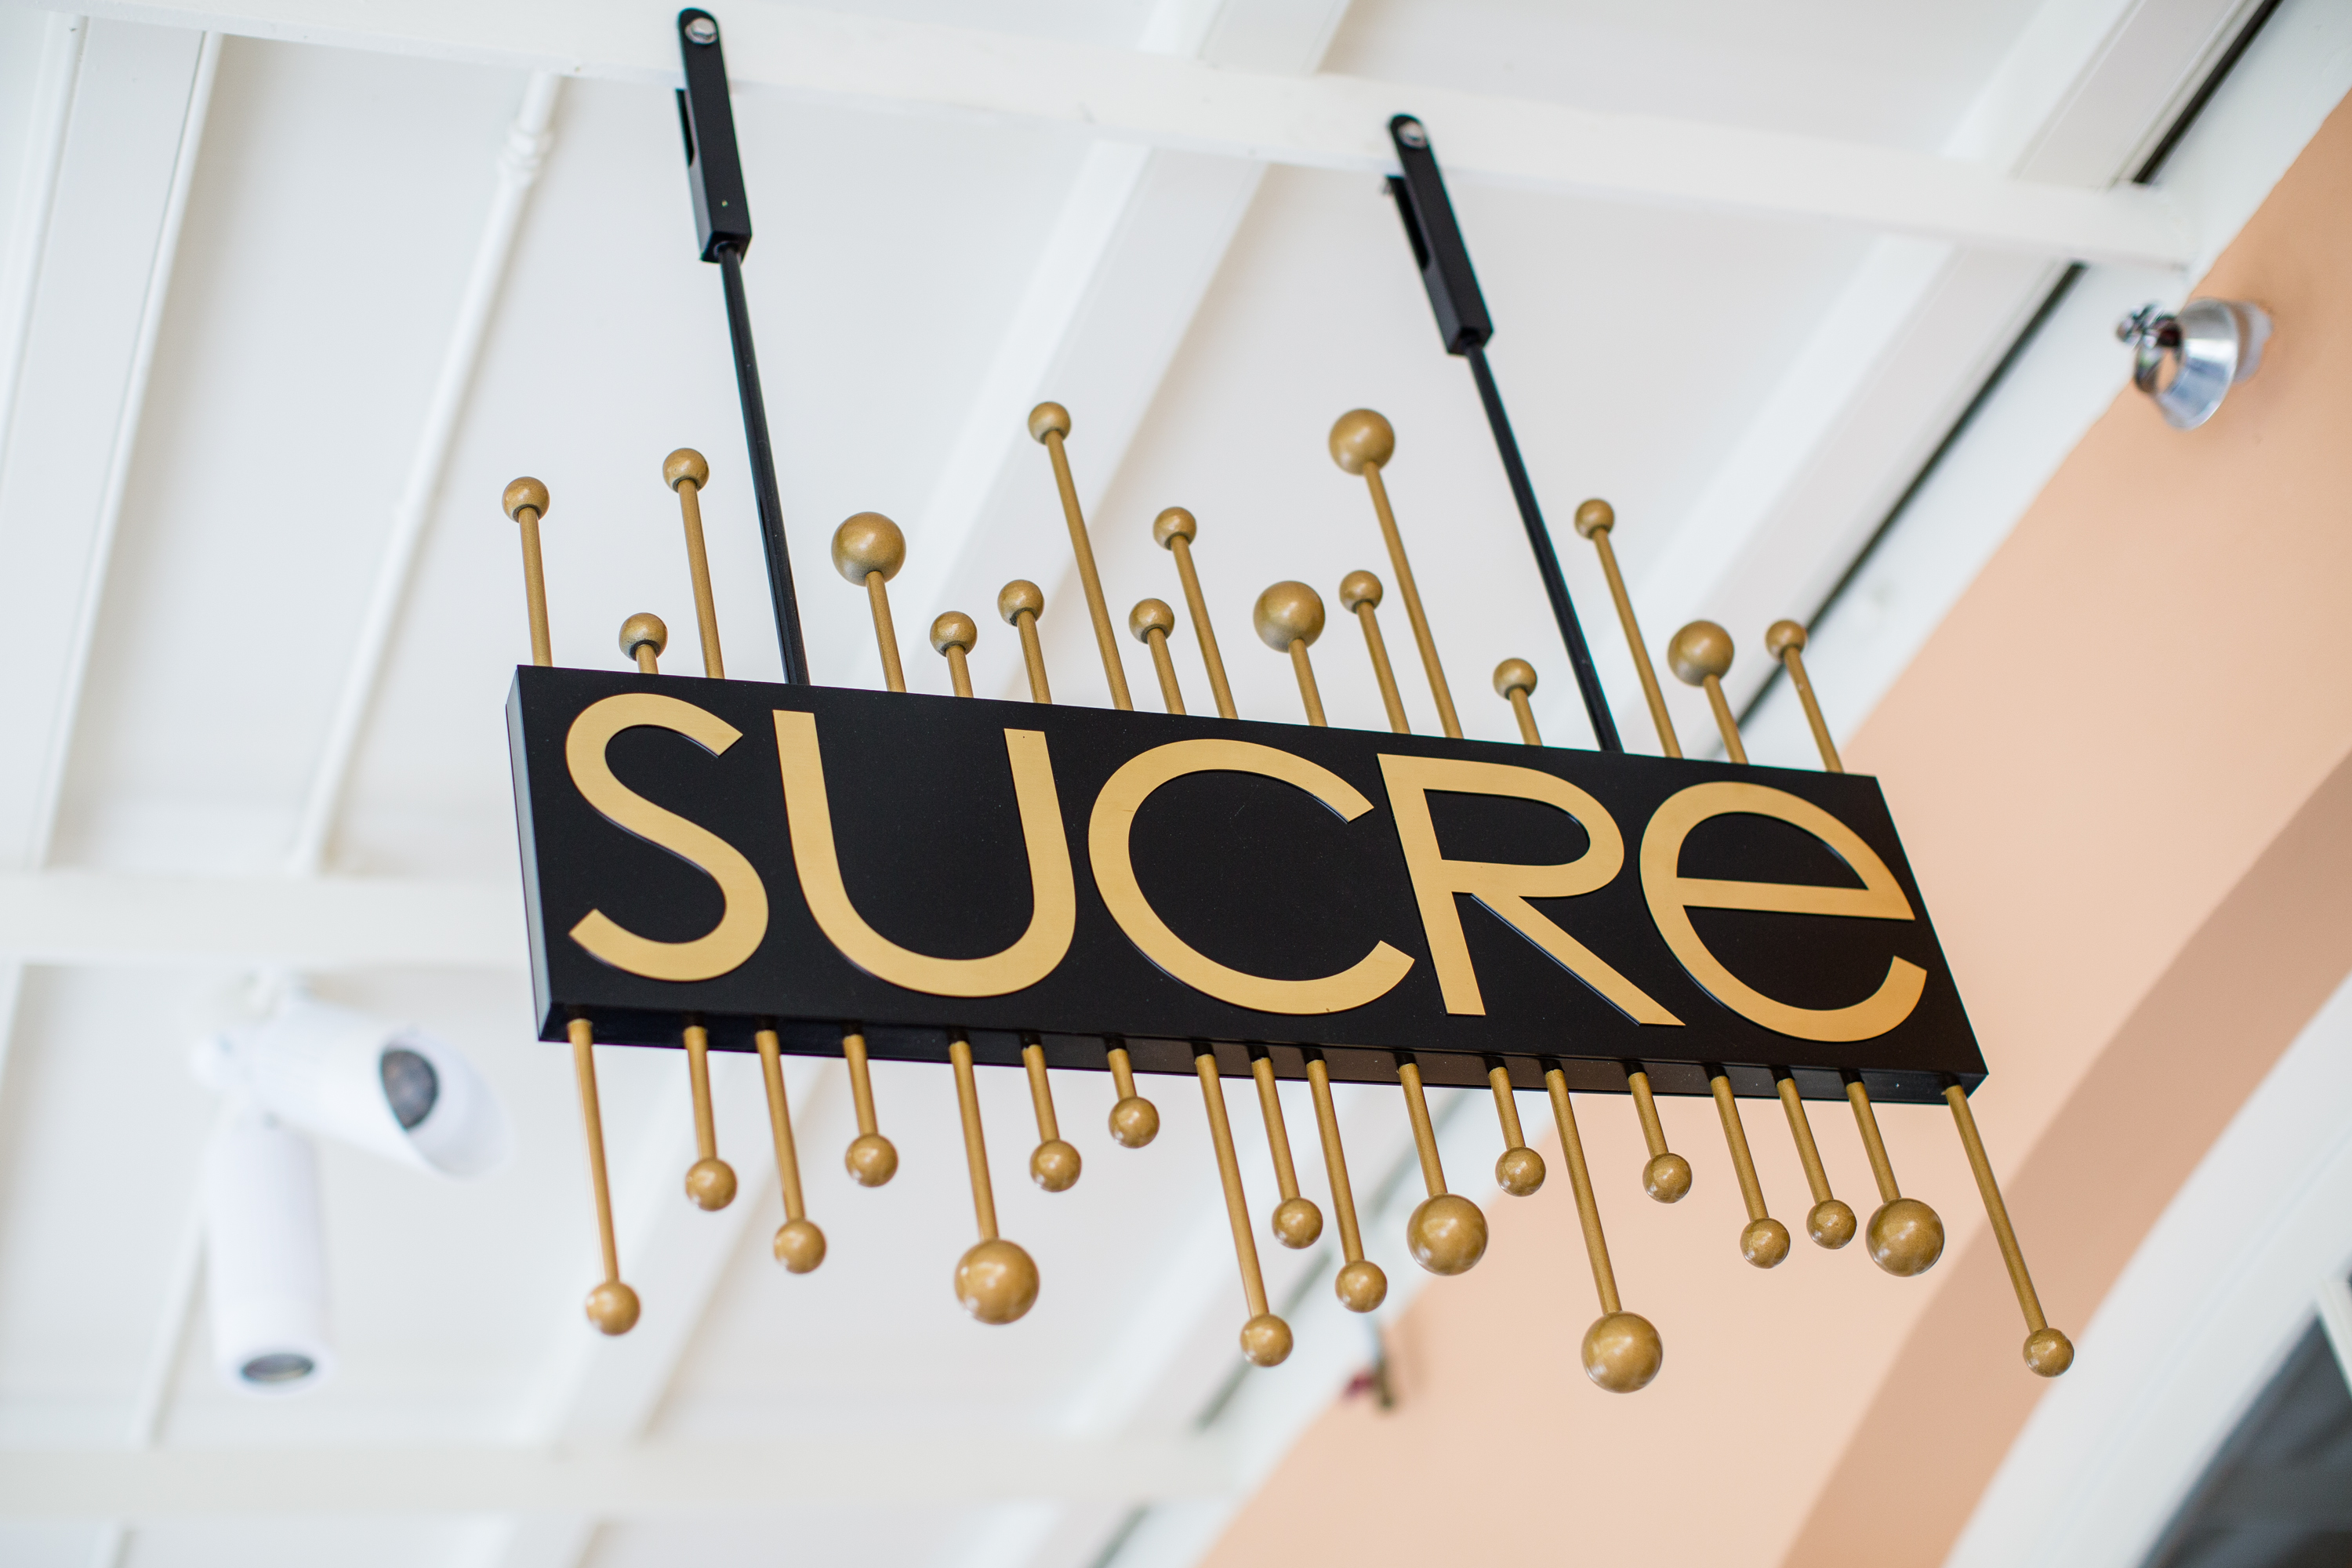 Sucre Closes All Stores Six Months After Report Revealed Harassment Allegations